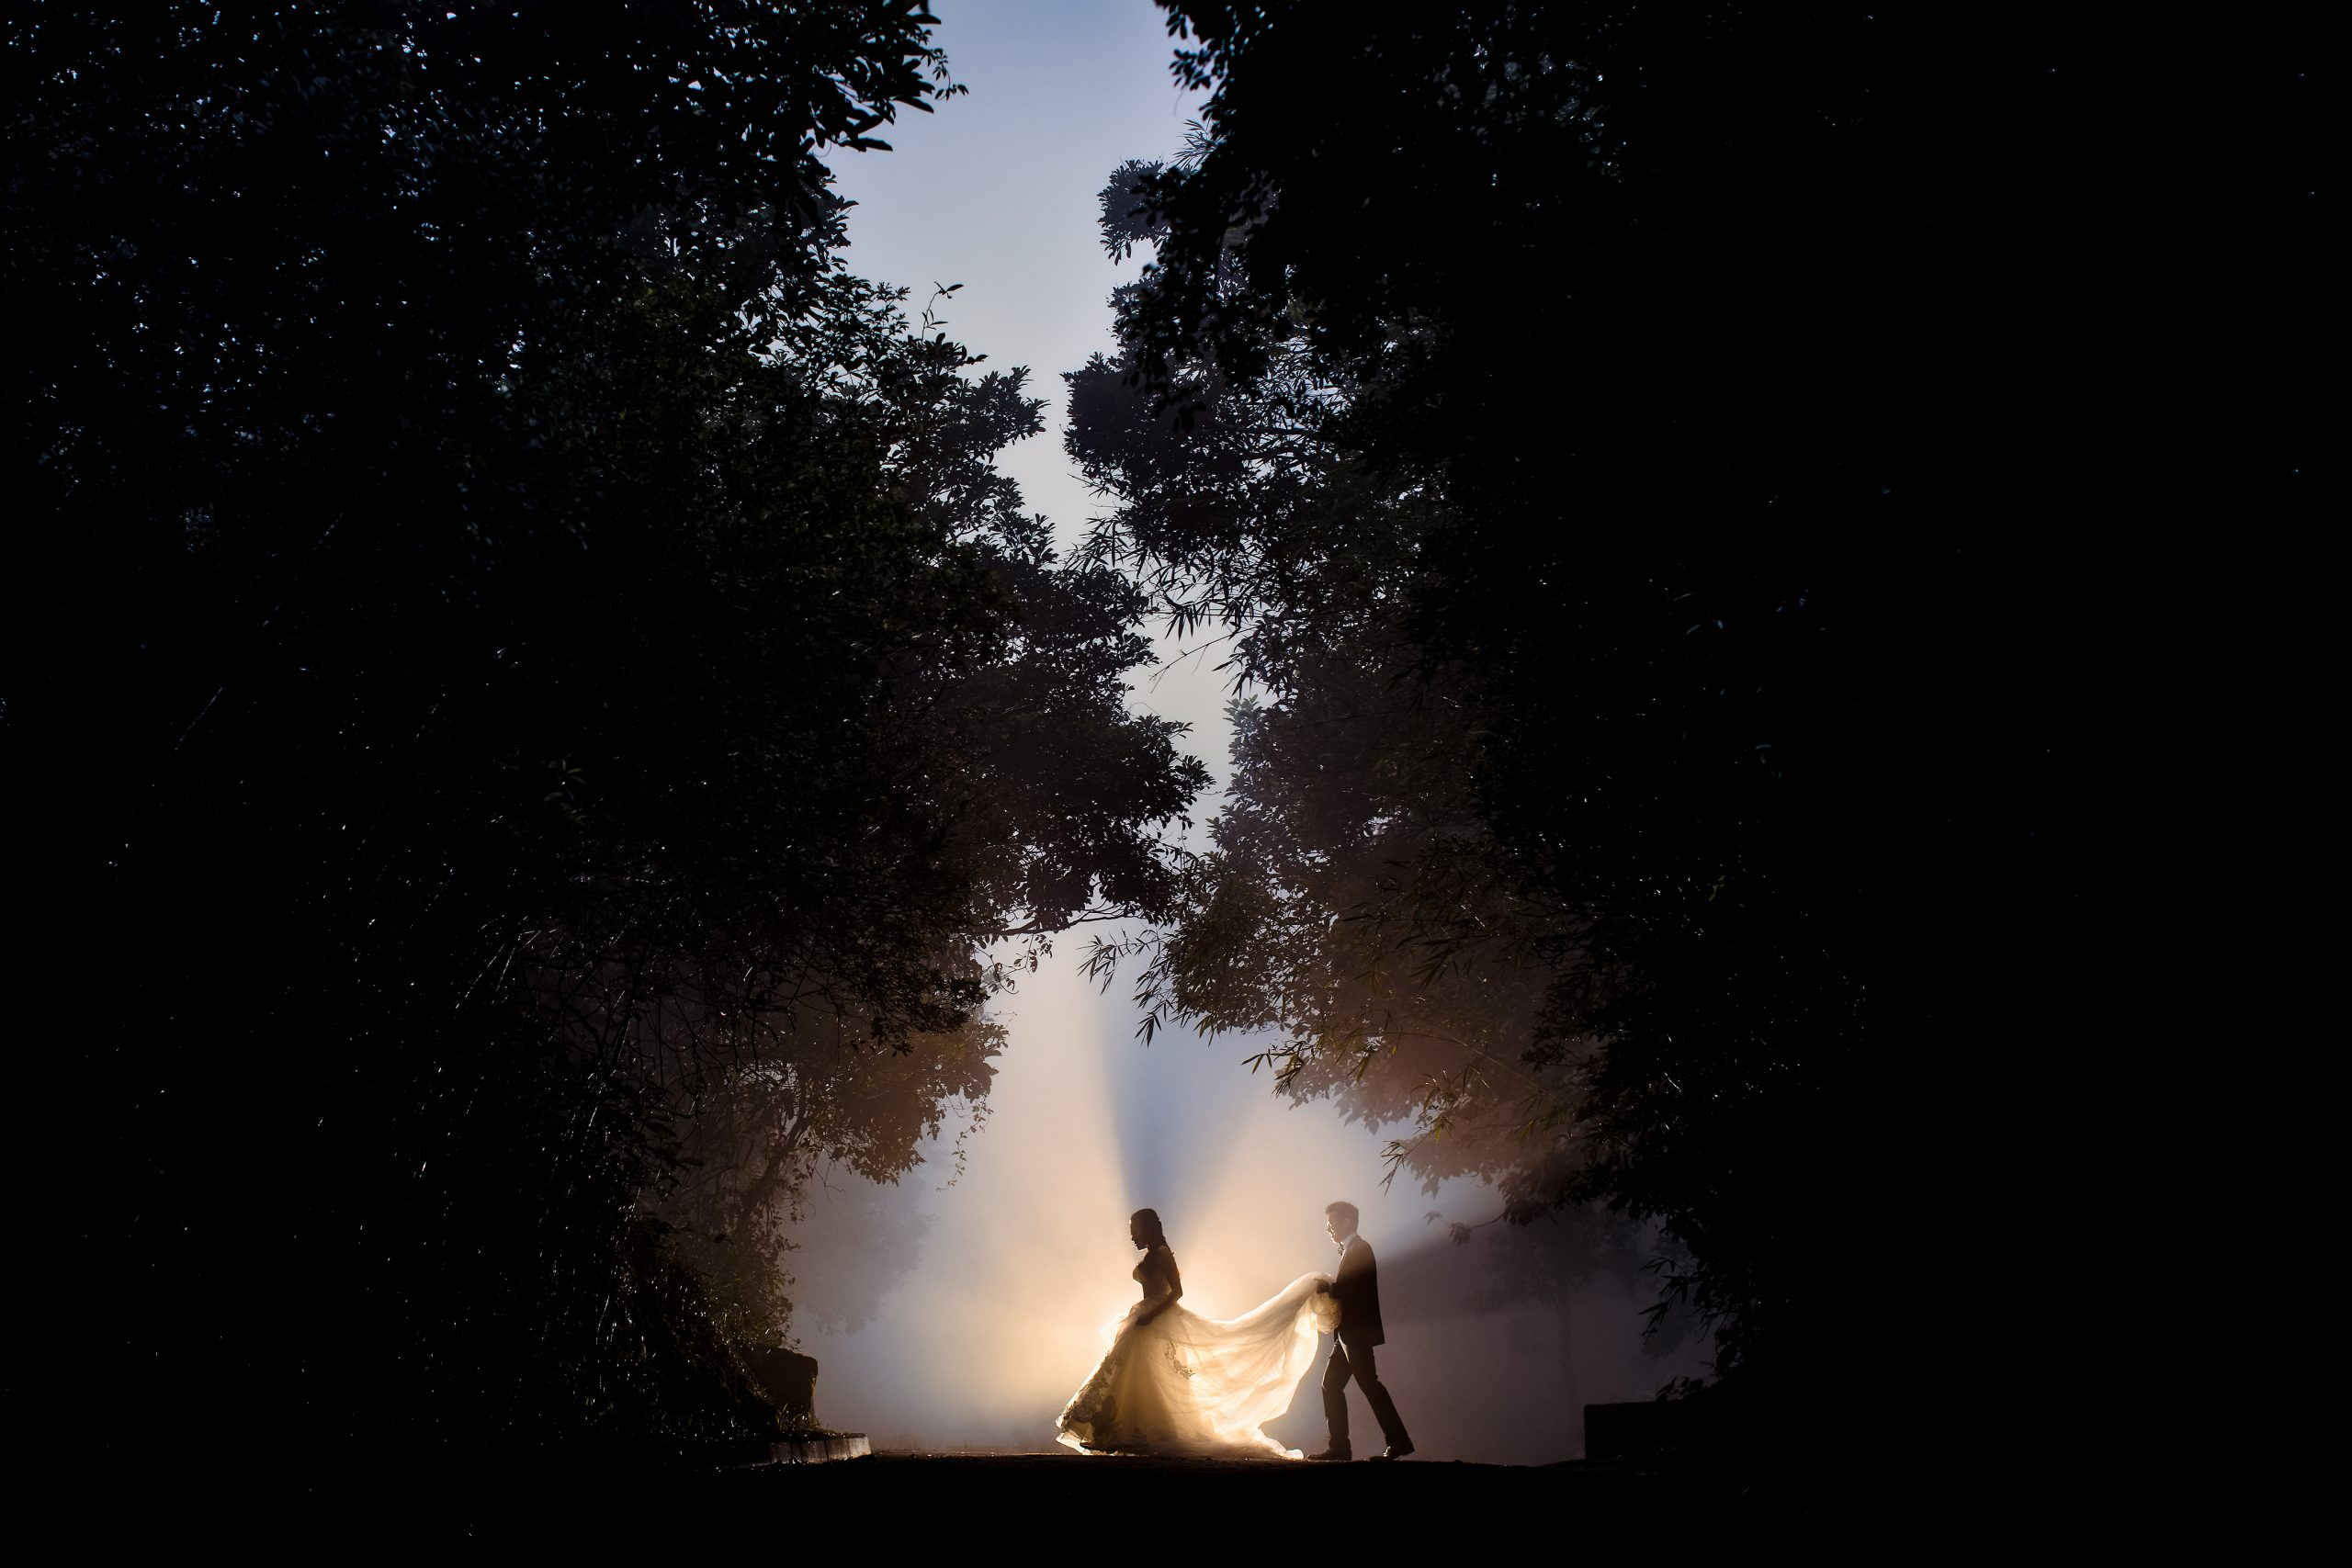 Surrounded by dark trees, groom holds bride's dress as they walk with rays of sunlight illuminating the path they cross